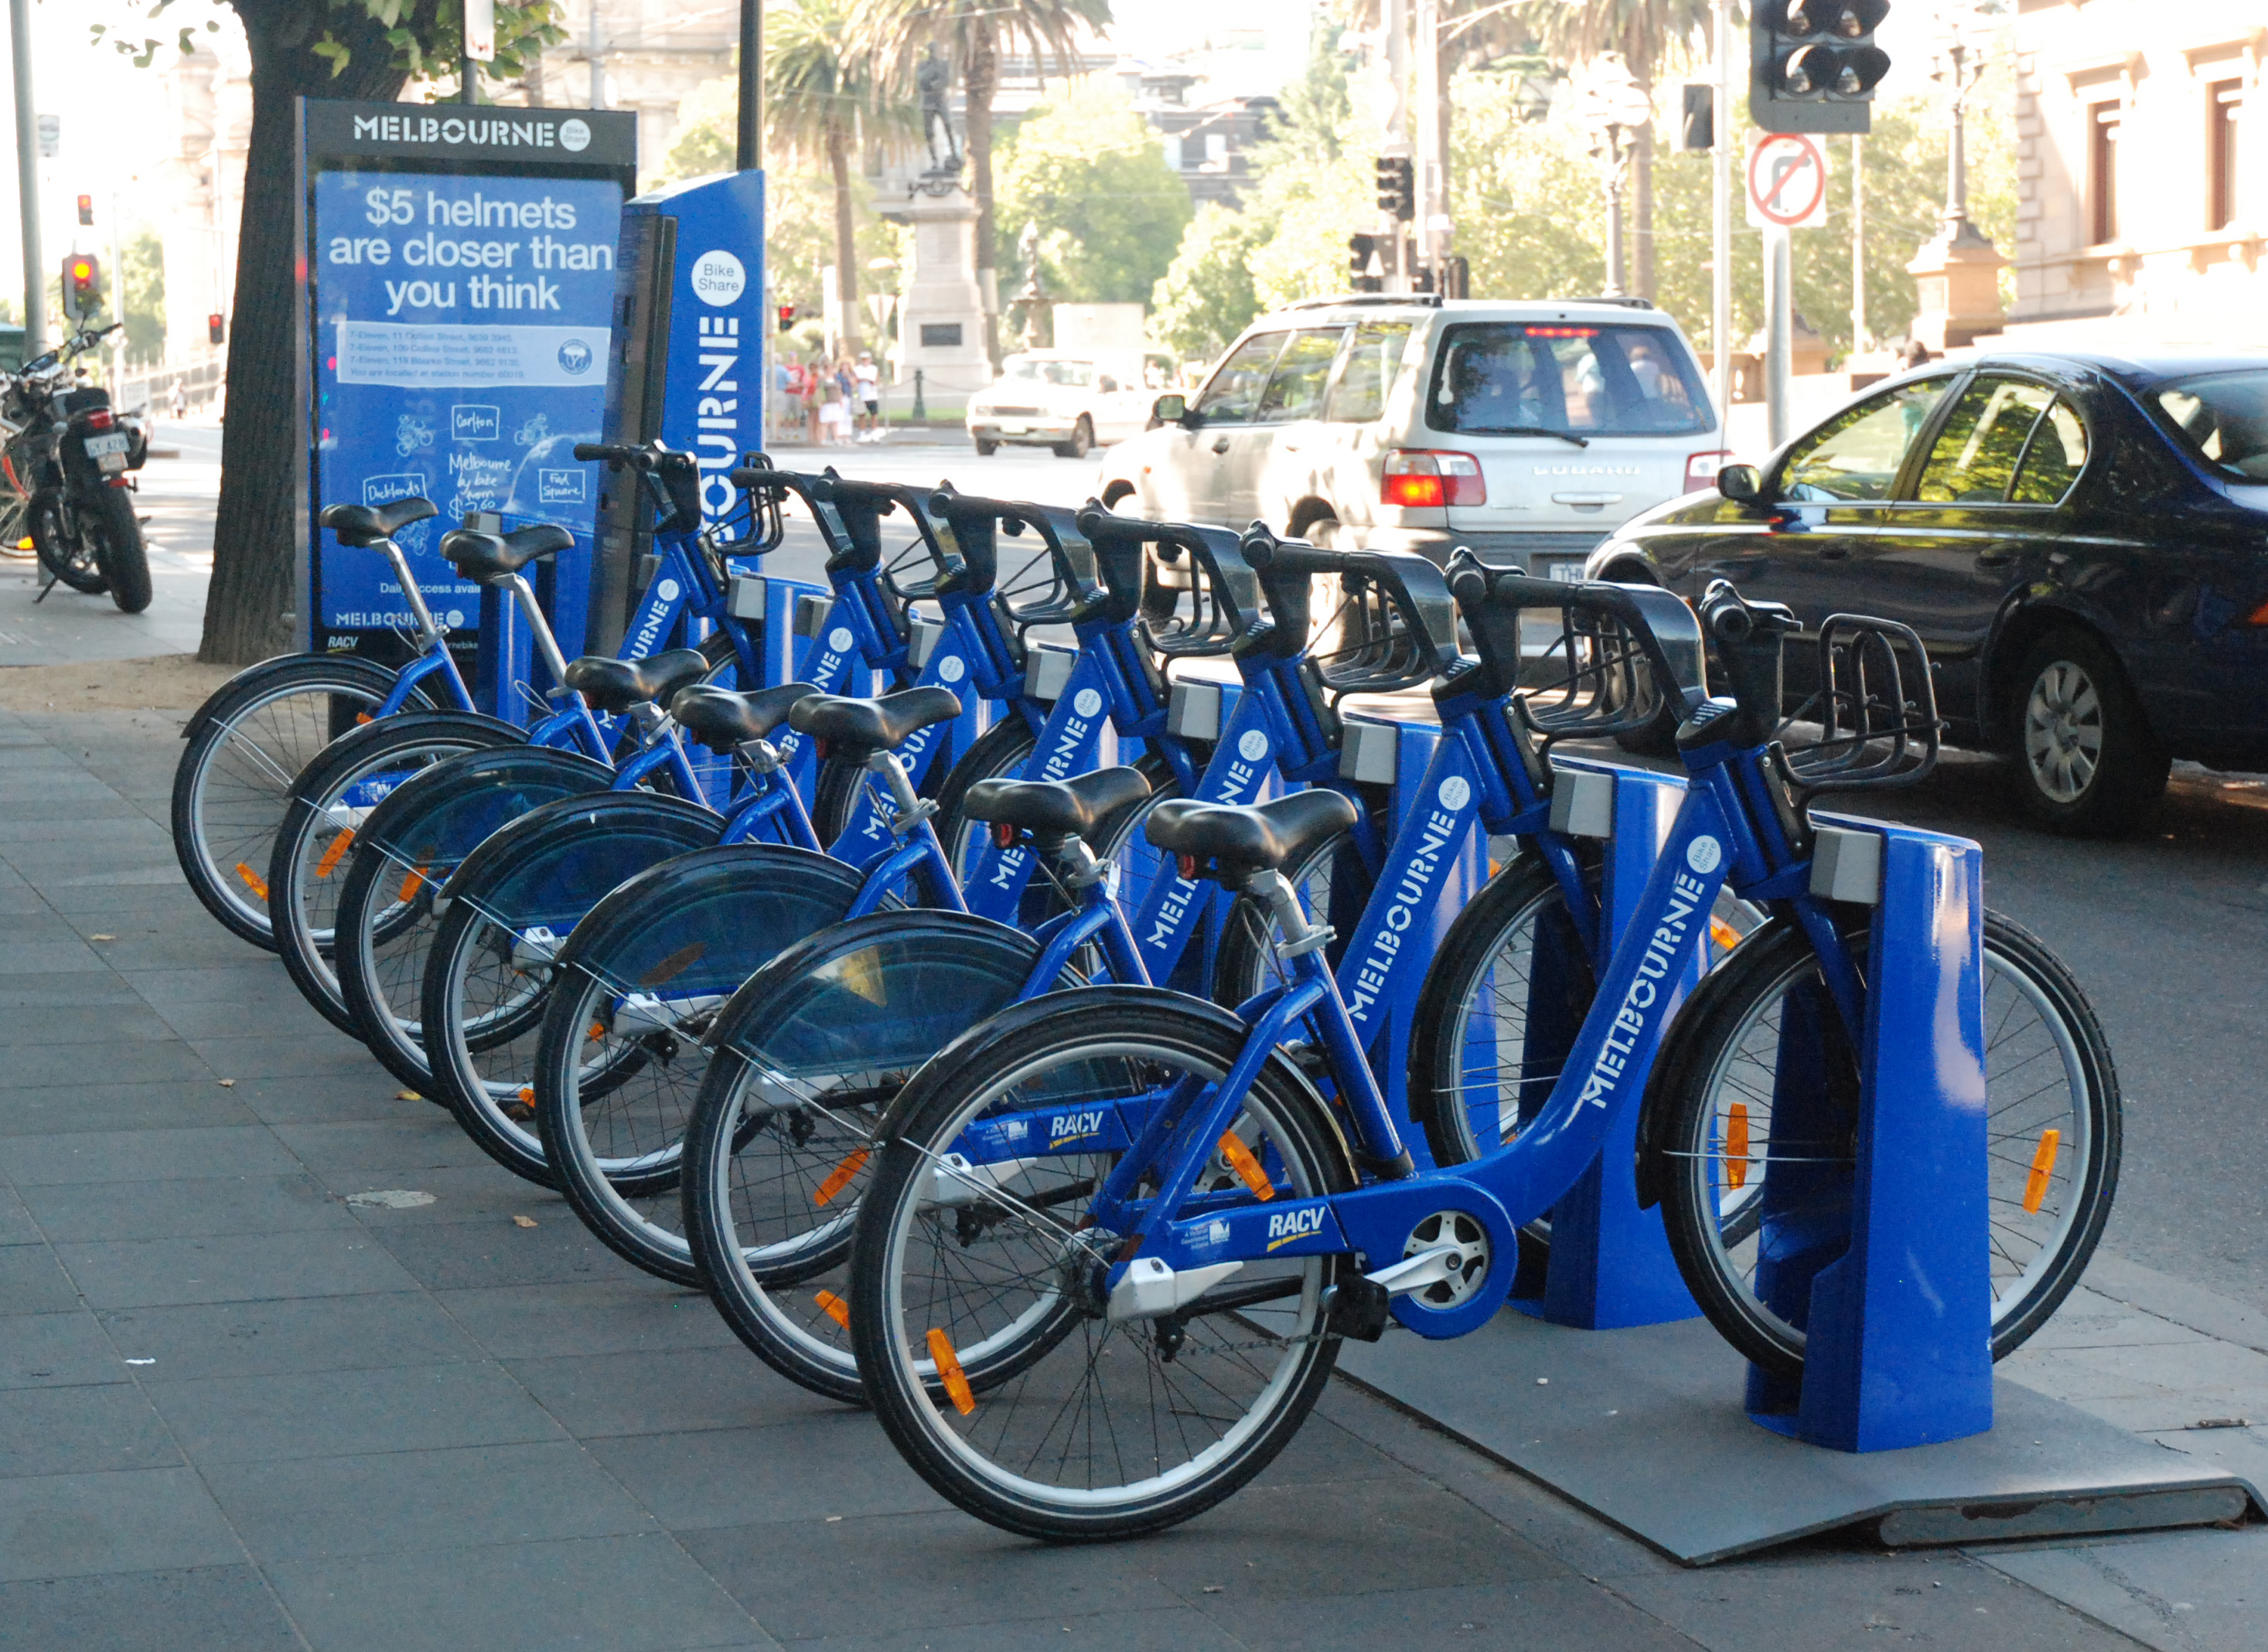 Bikes To Rent In Chicago A bicycle sharing station in